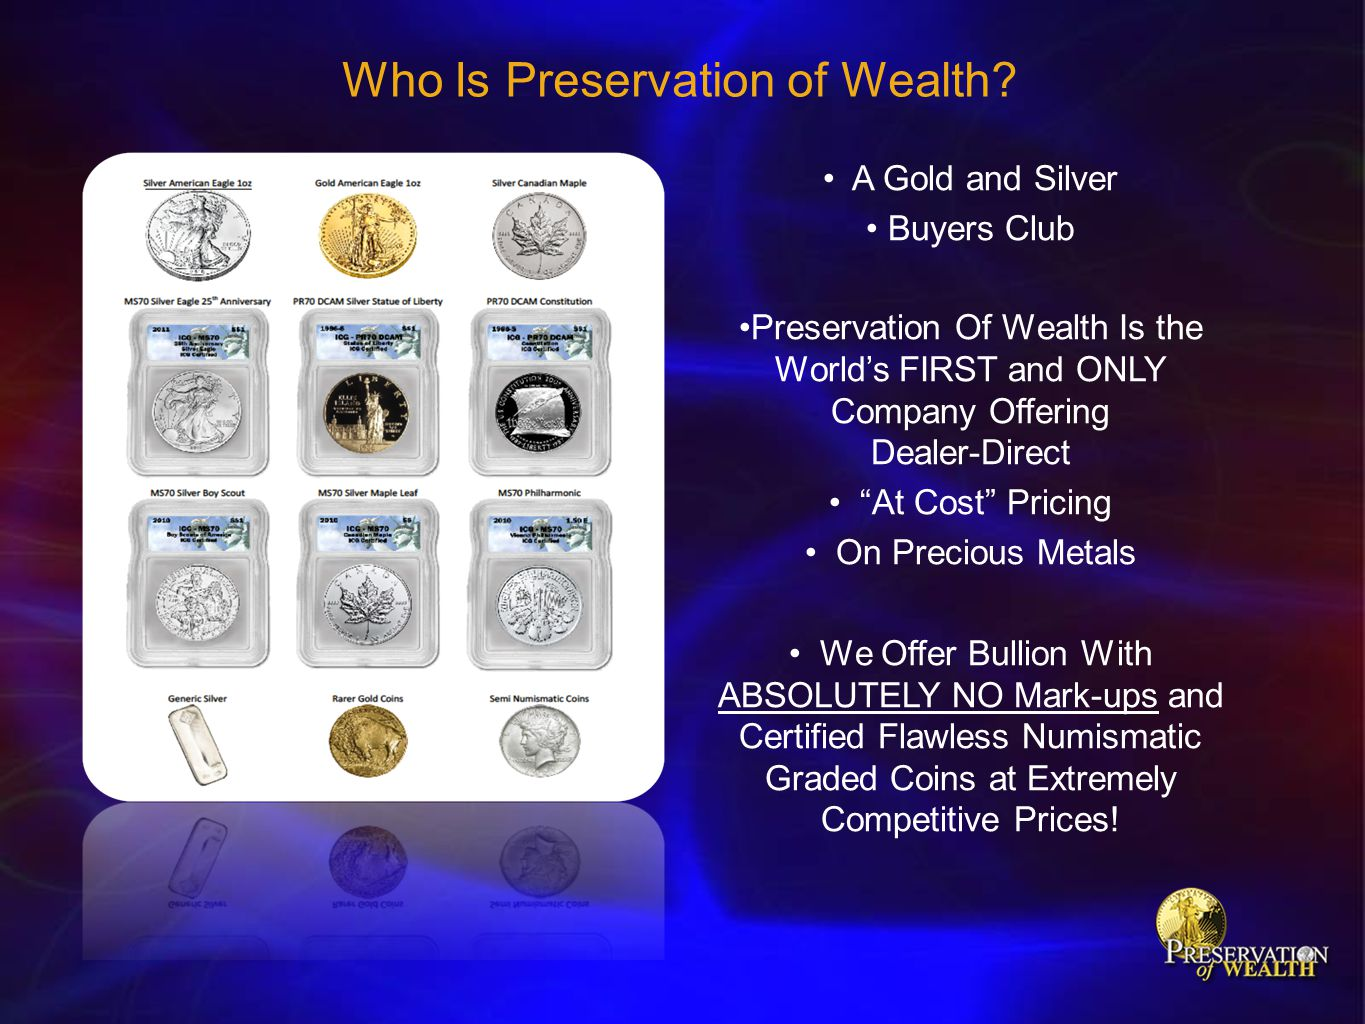 "A Gold and Silver Buyers Club Preservation Of Wealth Is the World's FIRST and ONLY Company Offering Dealer-Direct ""At Cost"" Pricing On Precious Metals"